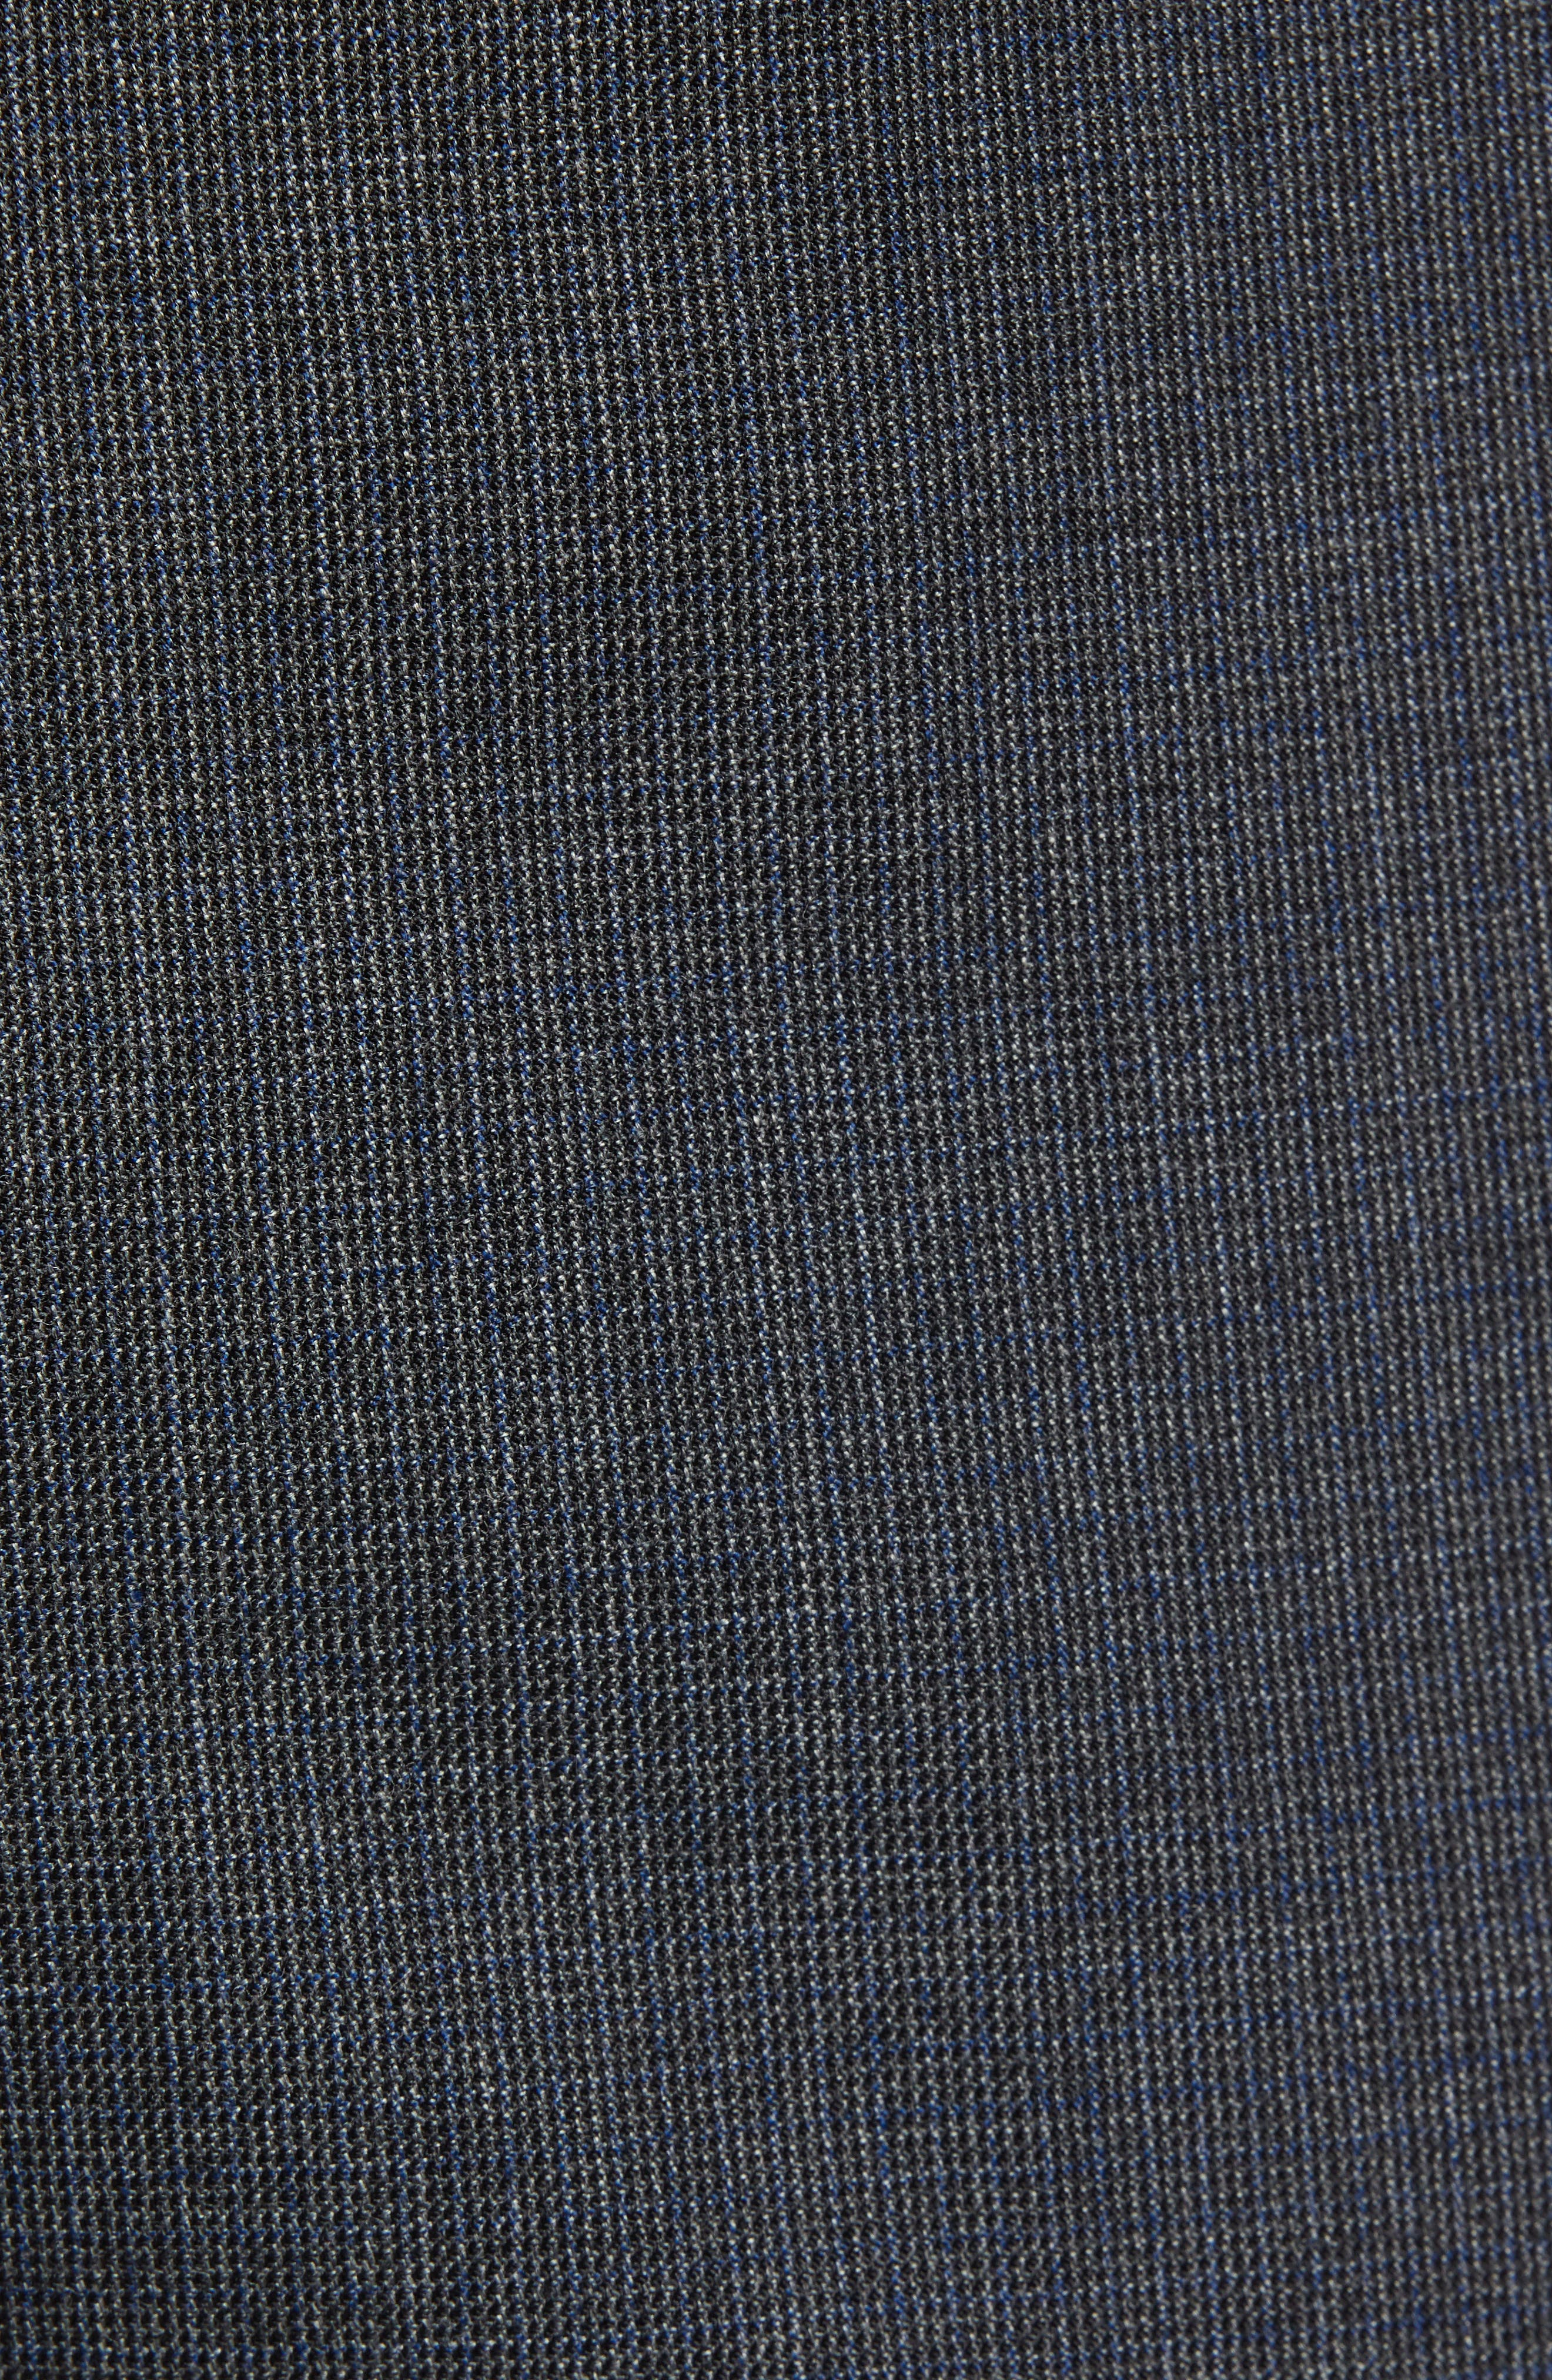 Leenon Flat Front Solid Wool Trousers,                             Alternate thumbnail 5, color,                             OPEN BLUE